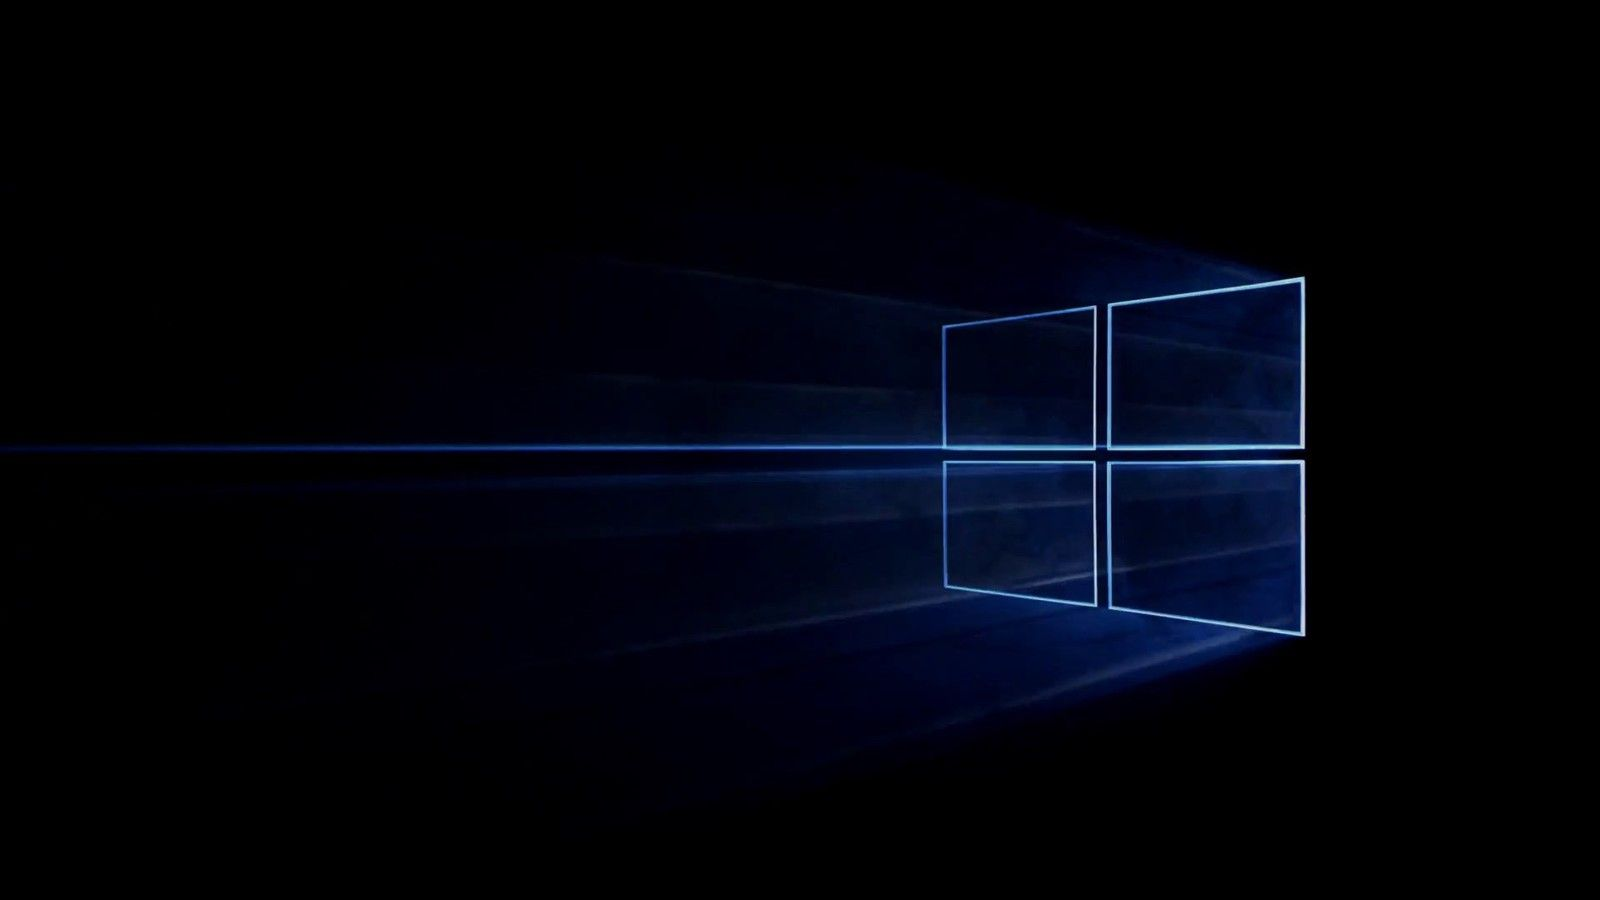 New Surface Lock Screen Wallpapers - Top Free New Surface